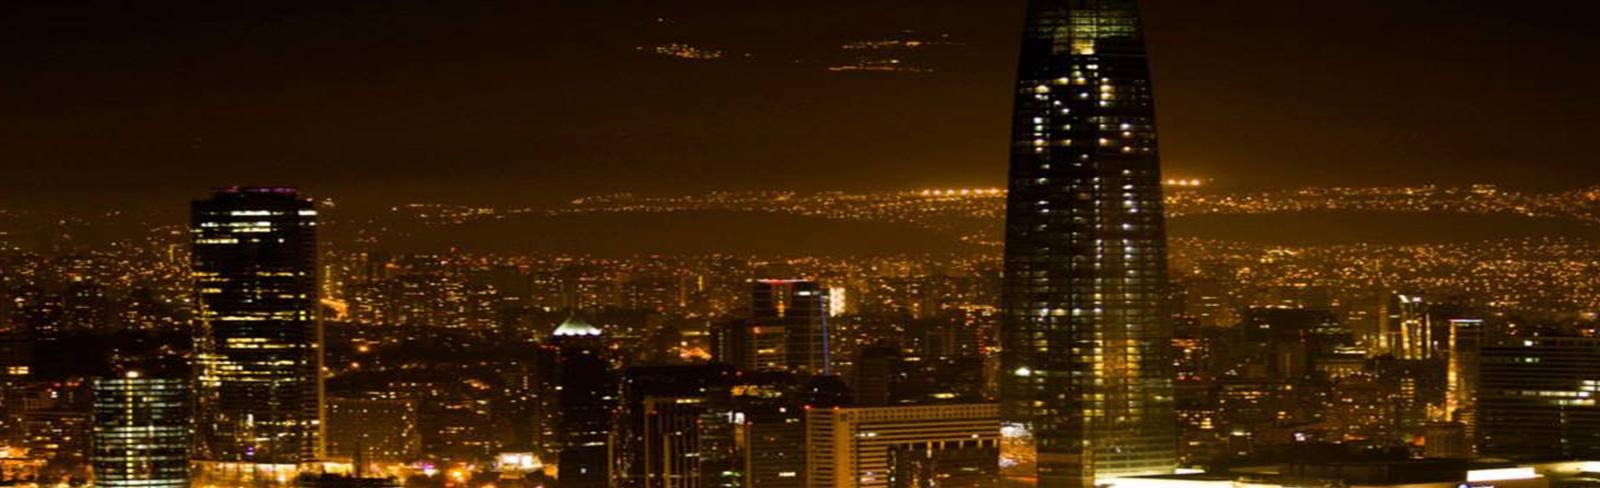 Santiago at night, power planning